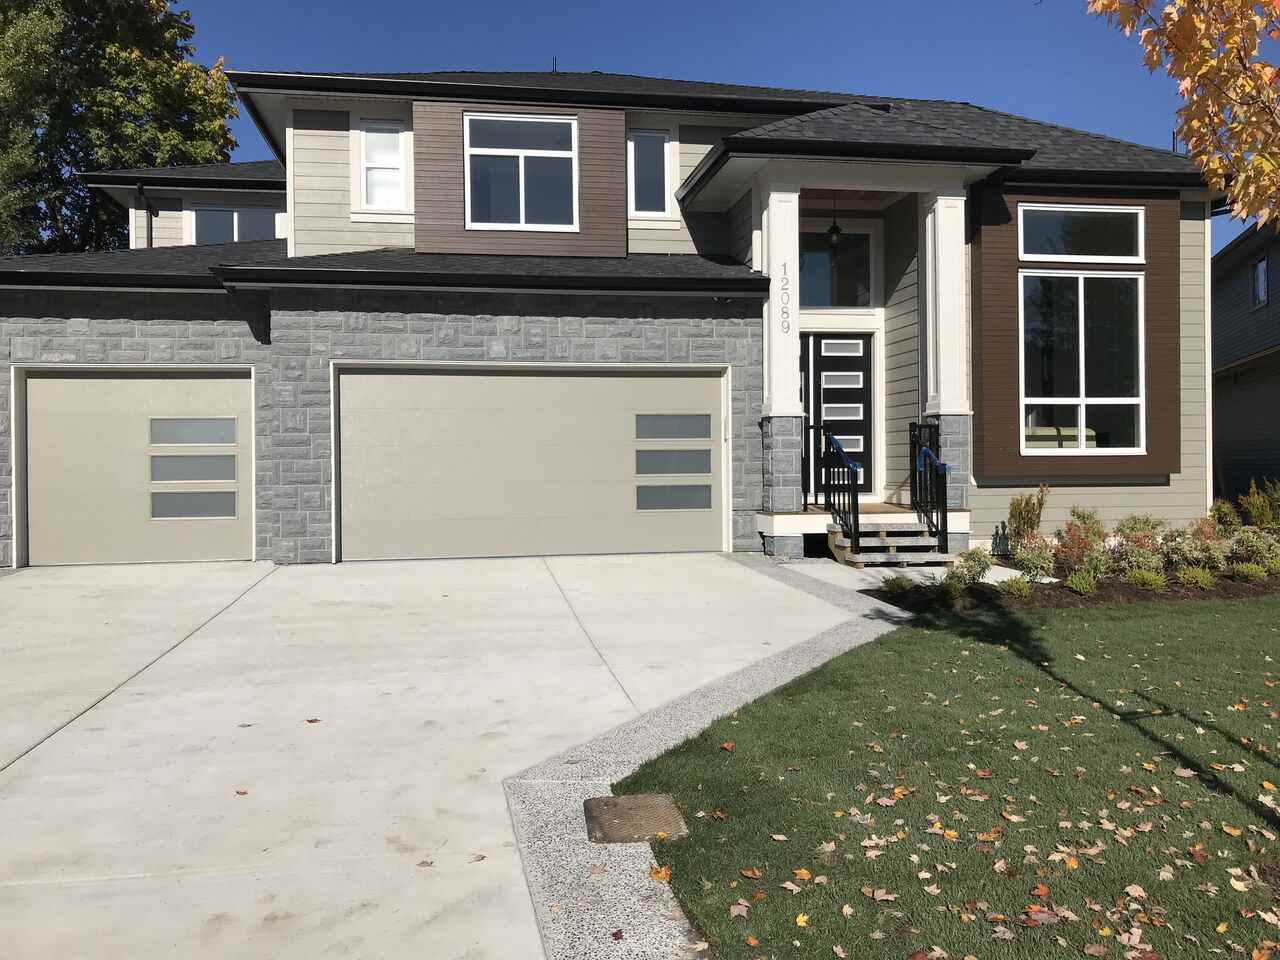 12089 249 STREET, Maple Ridge